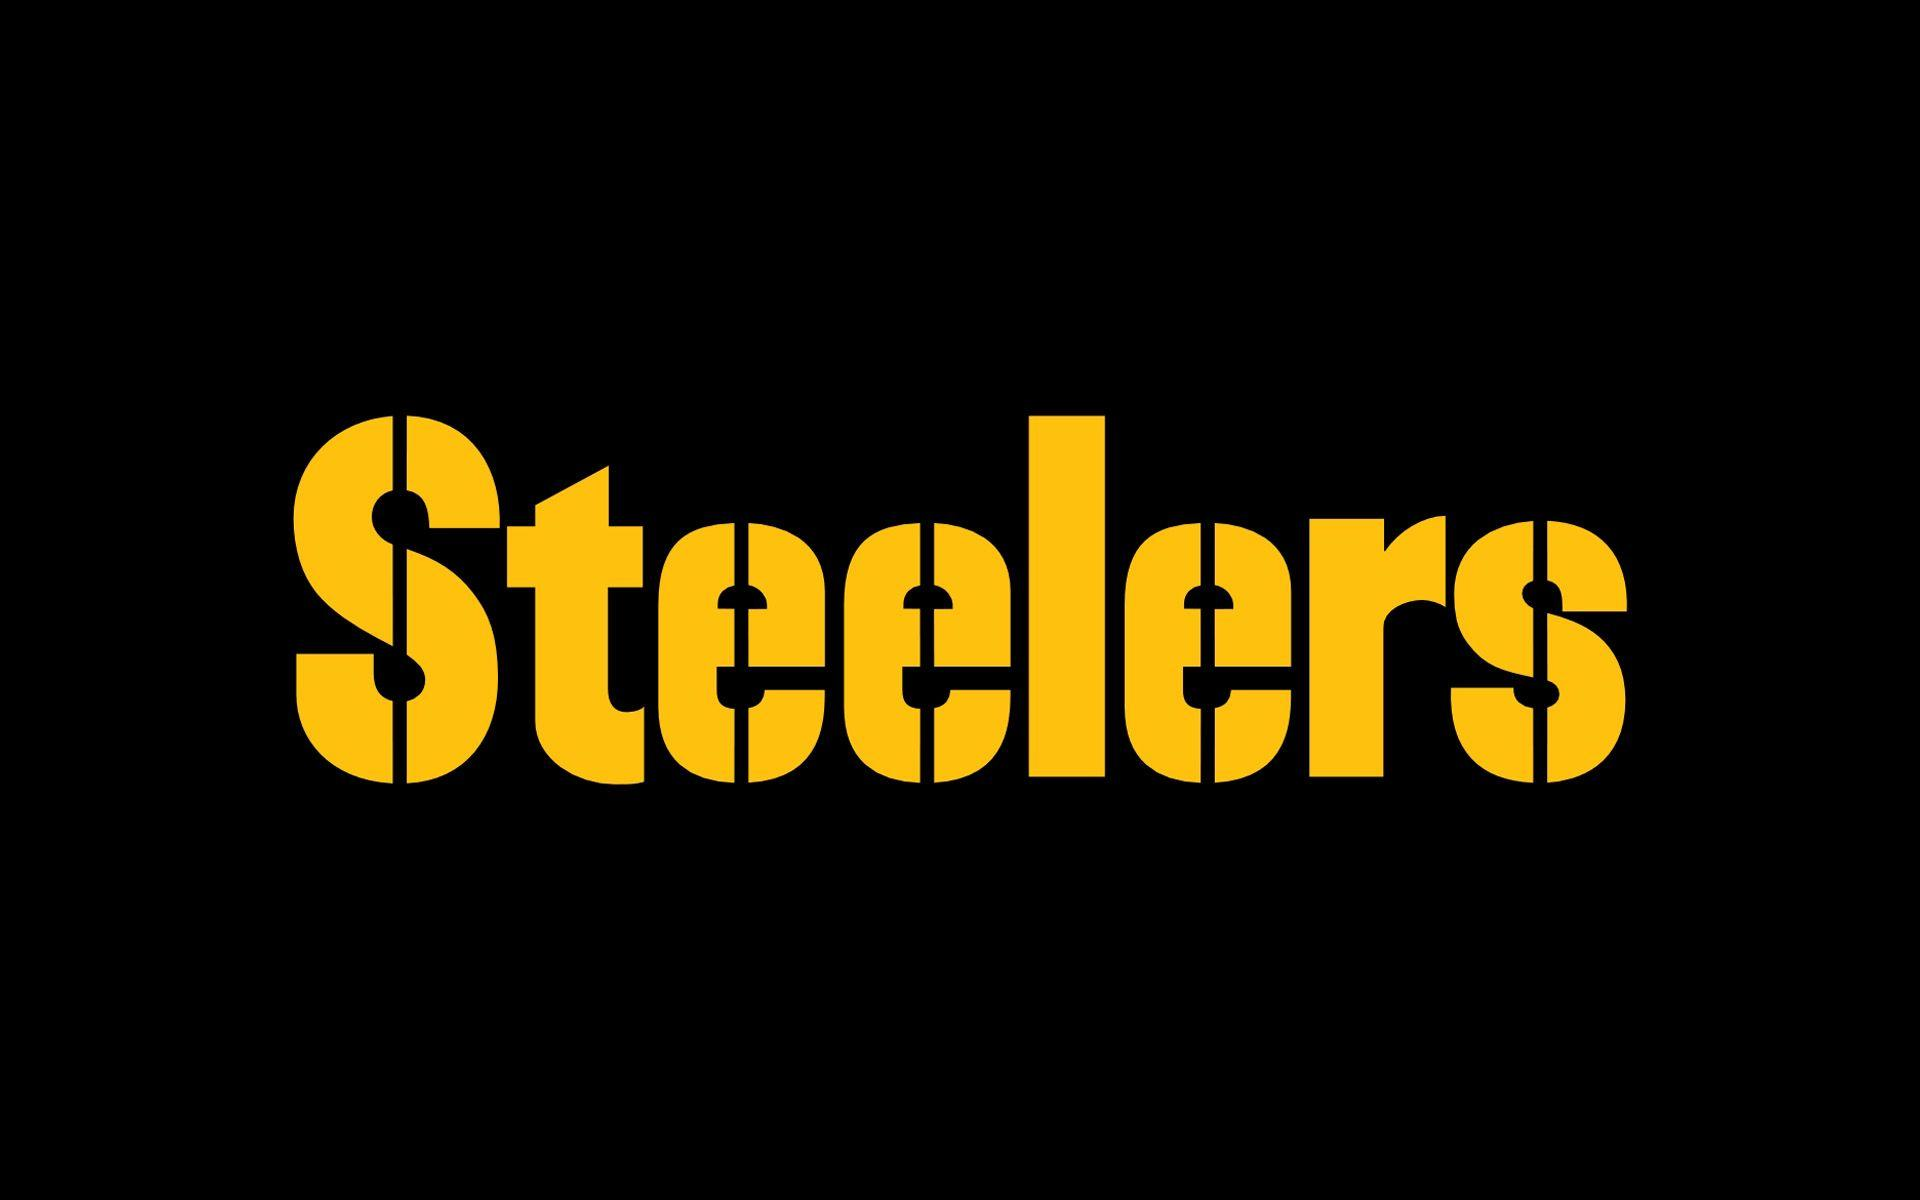 Pittsburgh Steelers Backgrounds For Computers 1920x1200